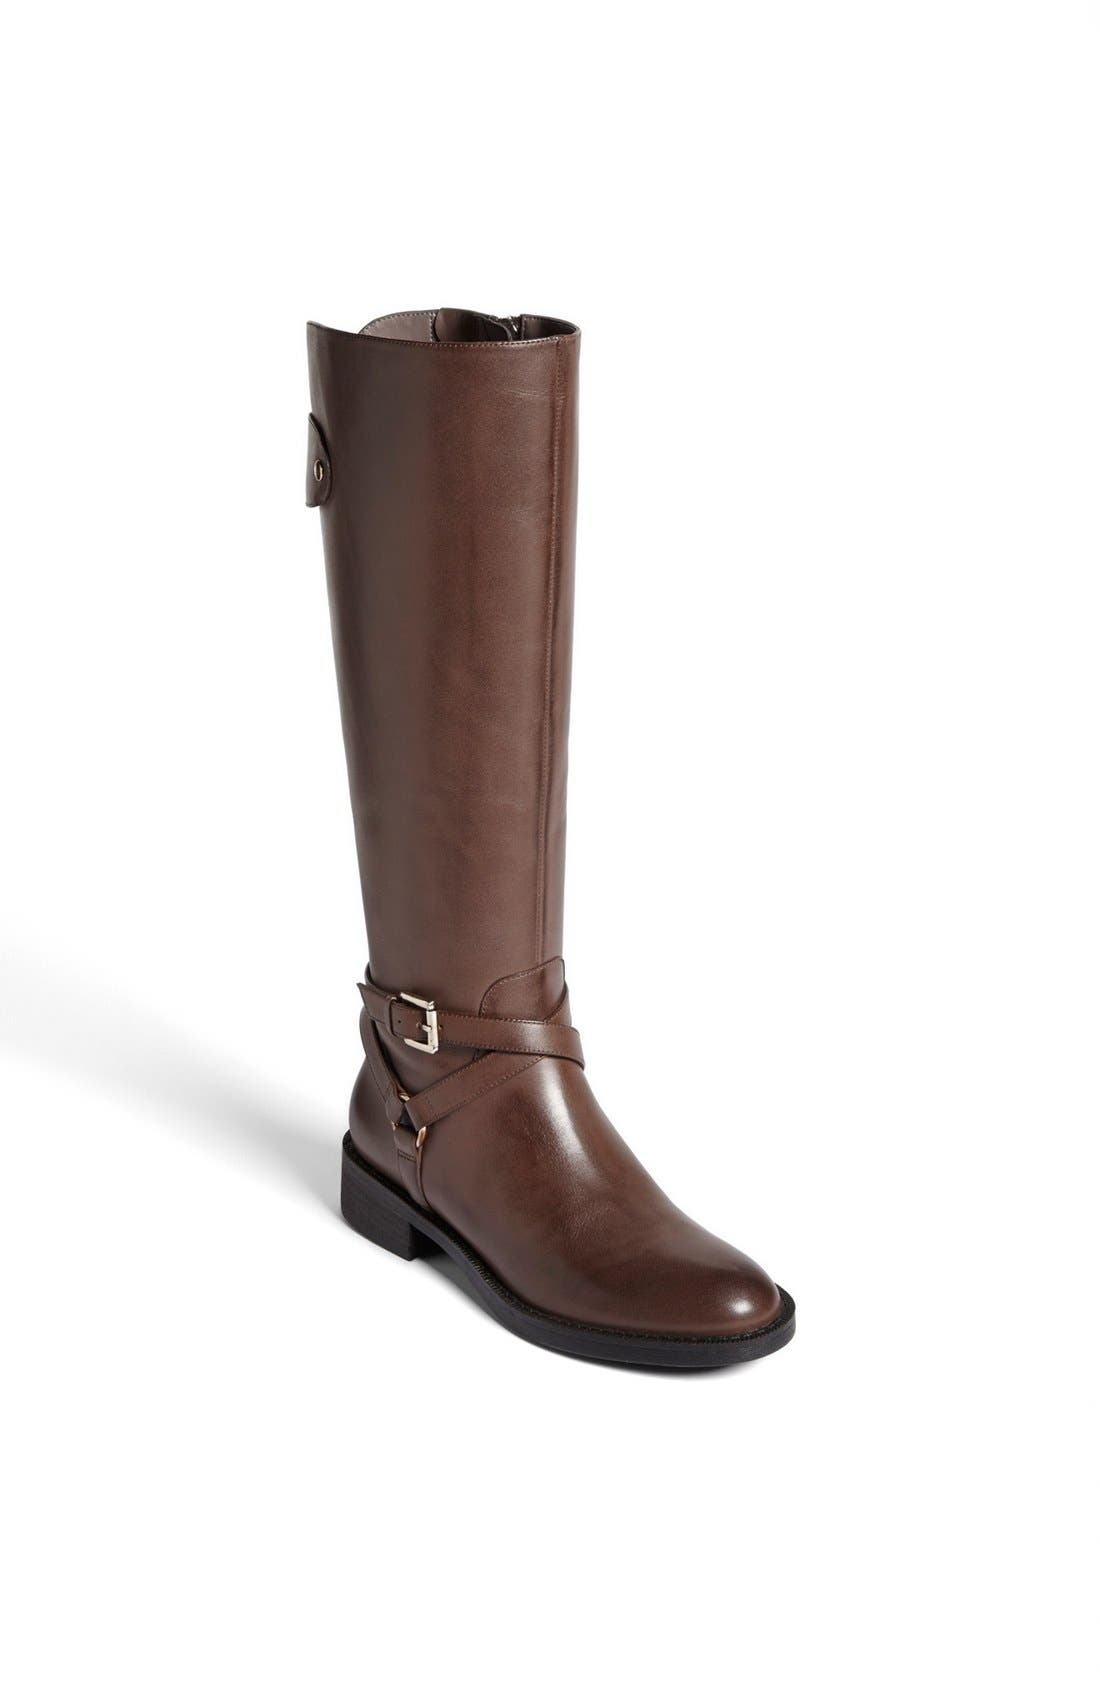 Alternate Image 1 Selected - Enzo Angiolini 'Saevon' Boot